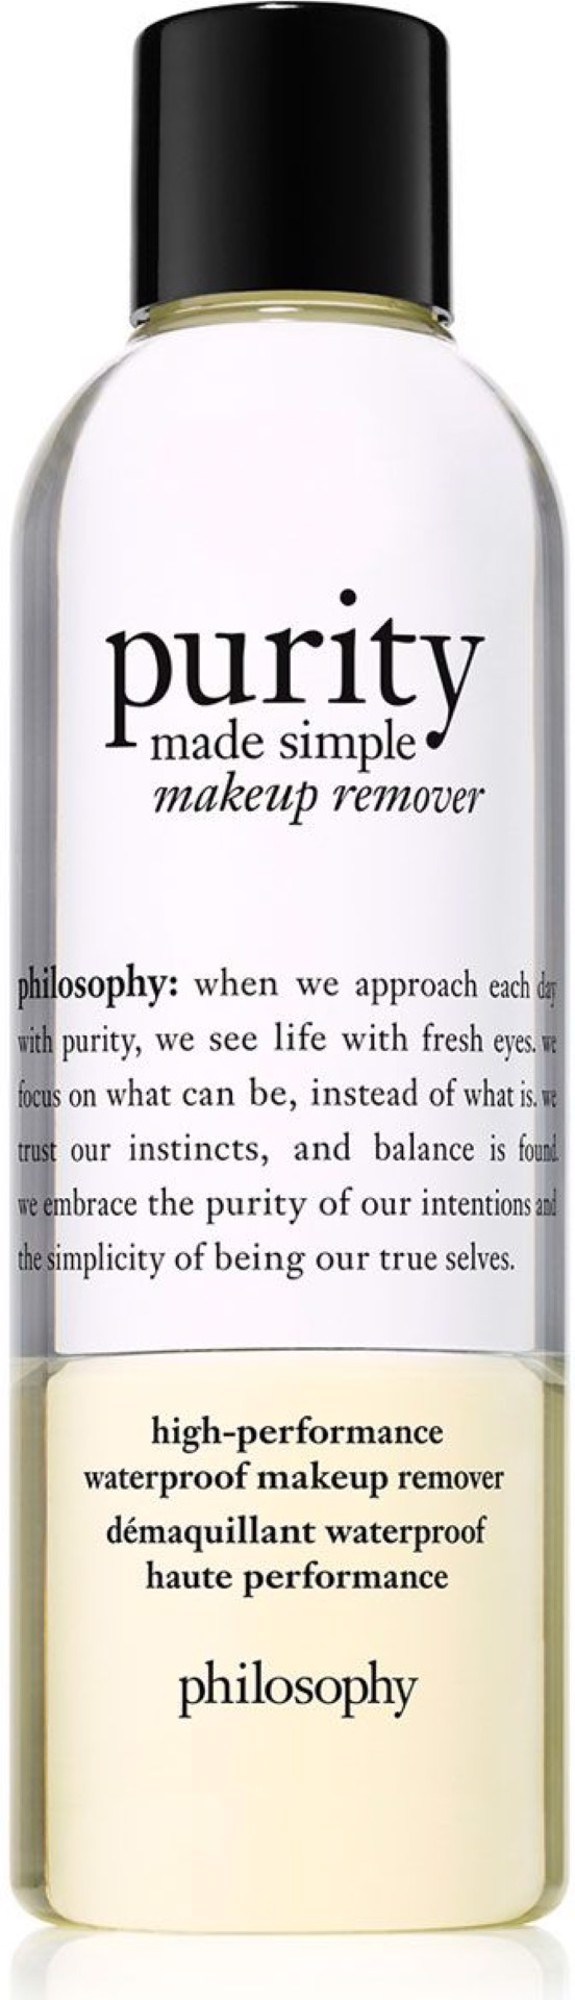 purity made simple makeup remover